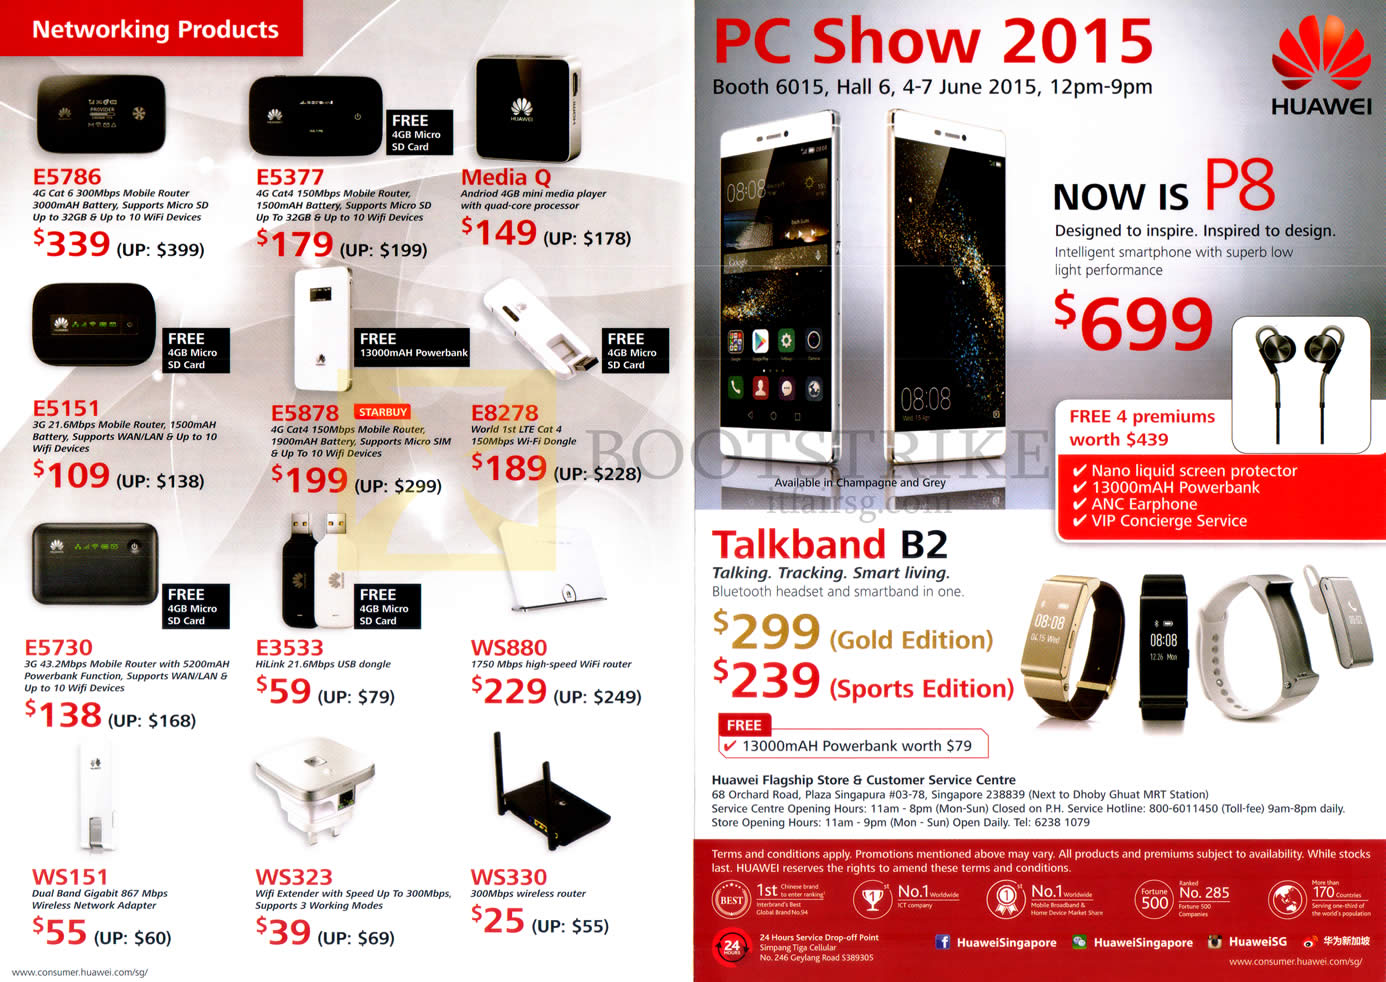 huawei phones price list. pc show 2015 price list image brochure of huawei mobile phone, networking products, p8. « phones e